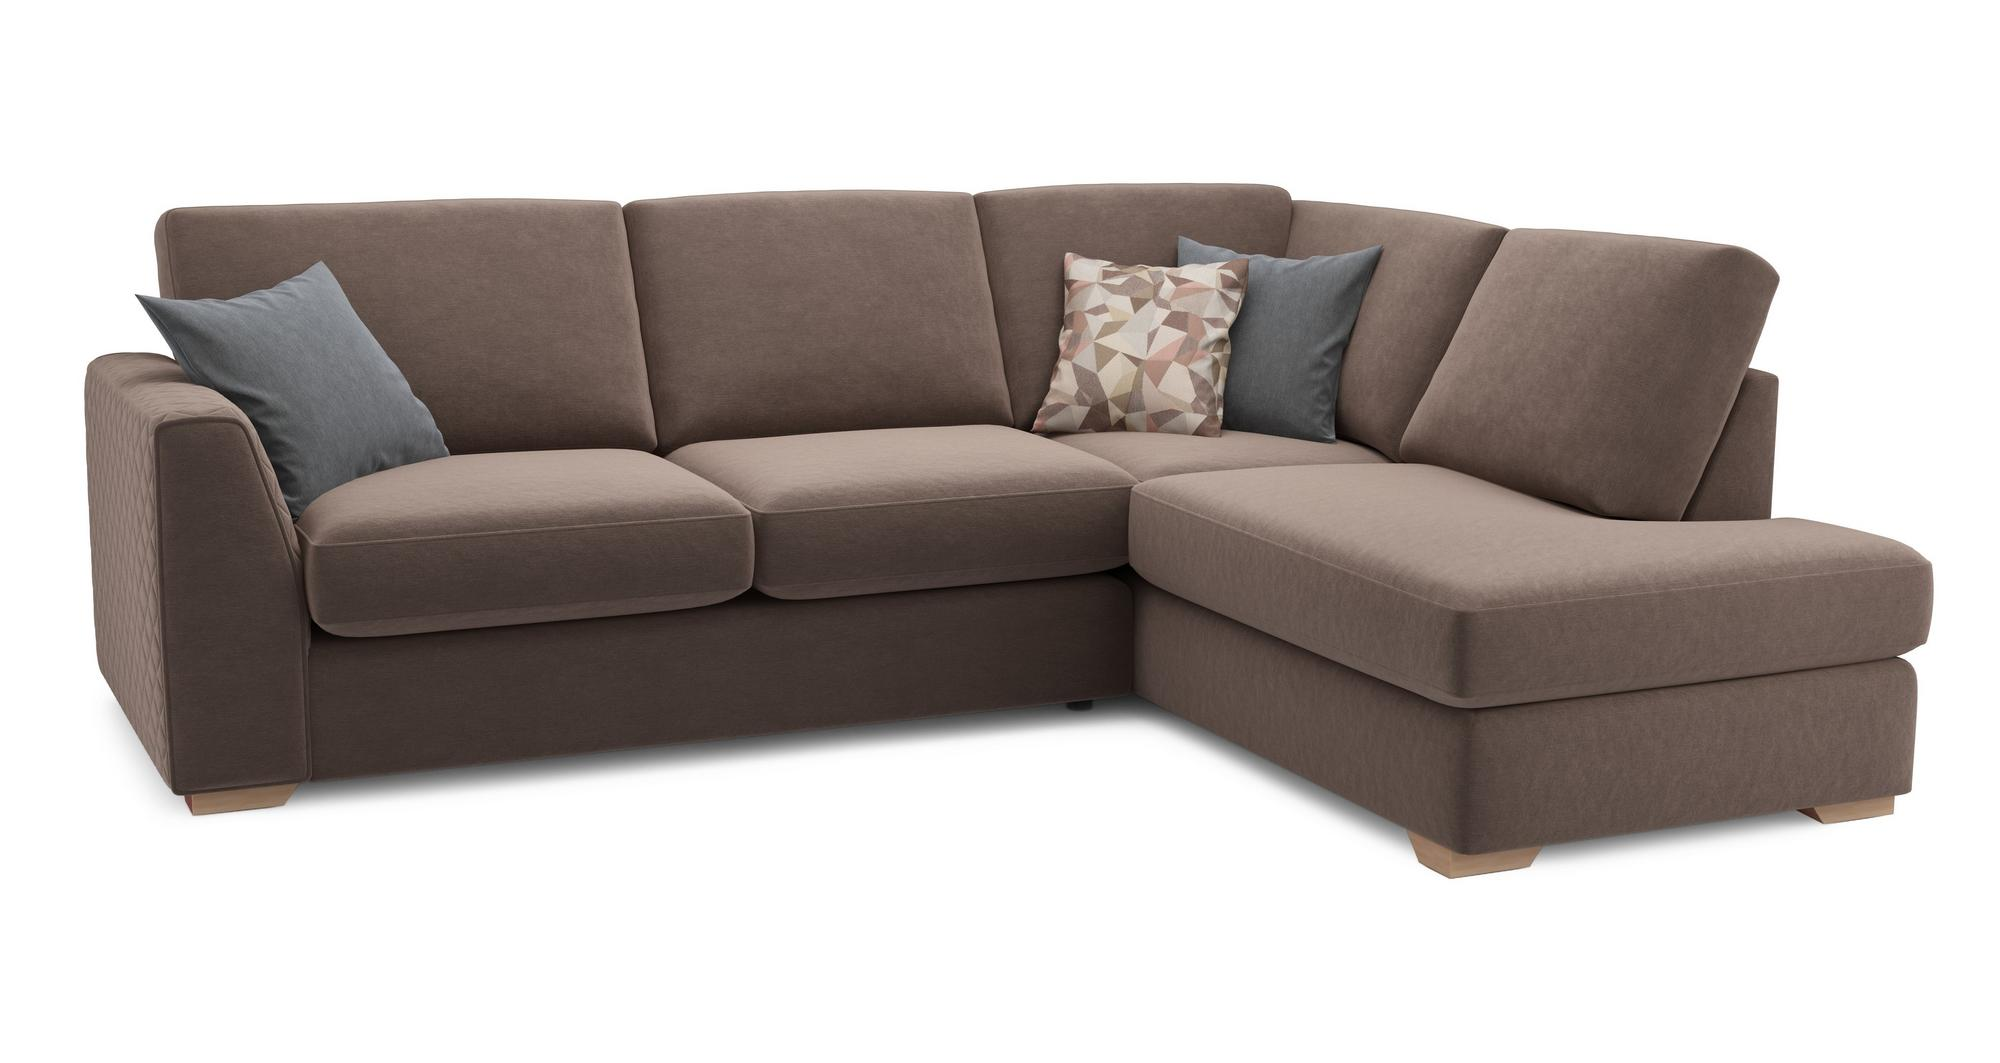 Dfs Eleanor Mocha Brown Fabric Left Arm Facing Open End Corner Sofa Ebay